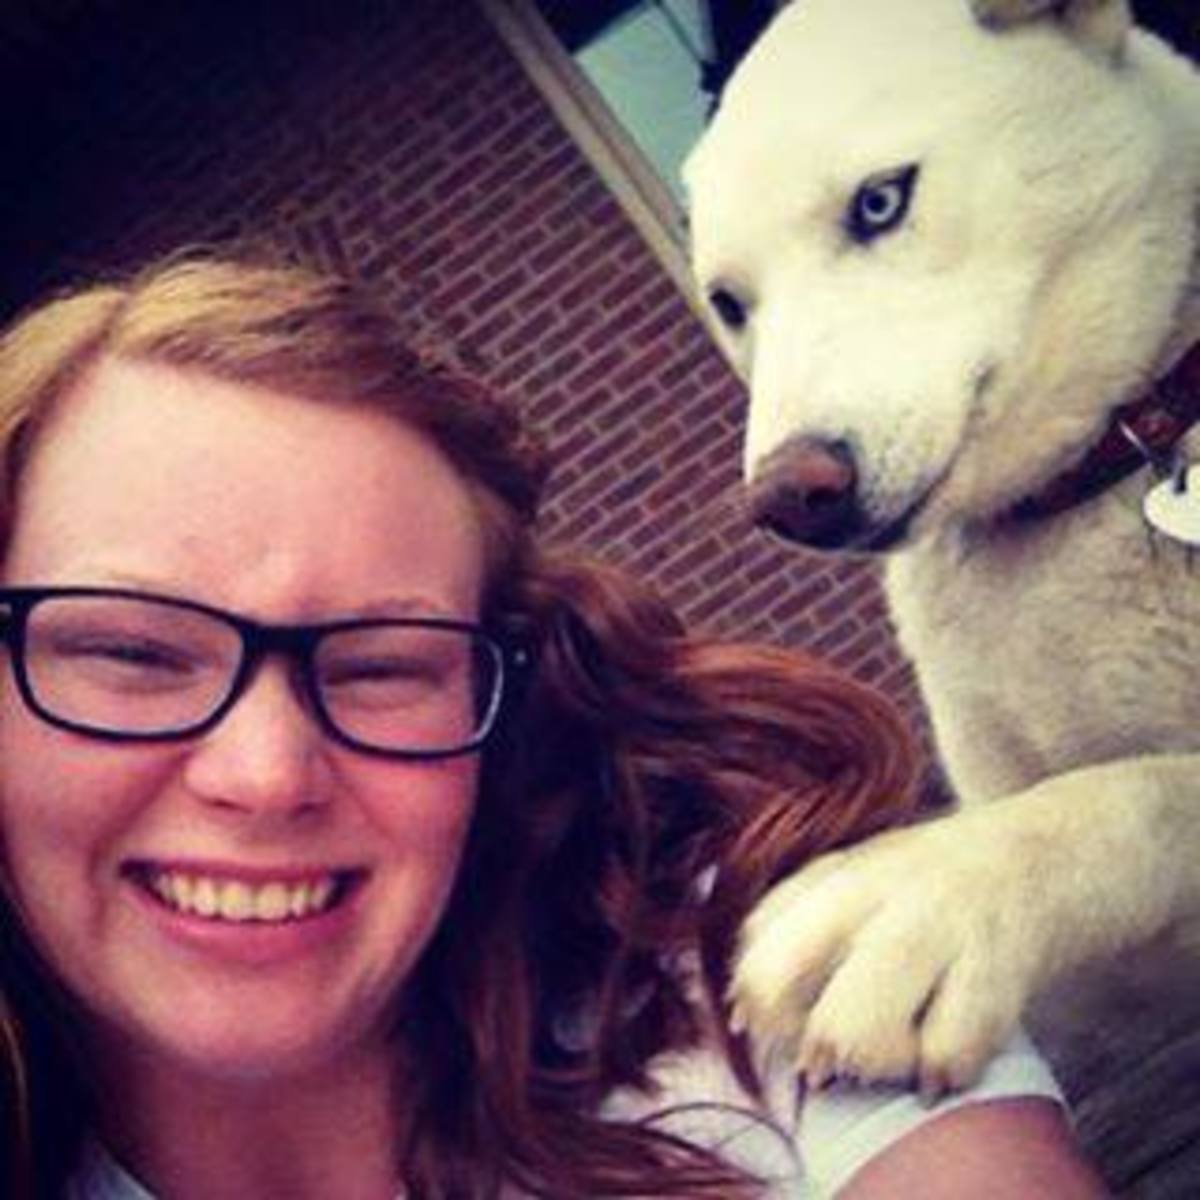 Rocket, an all-white bi-eyed male husky, really misses his family and wants to come home. Have you seen him?